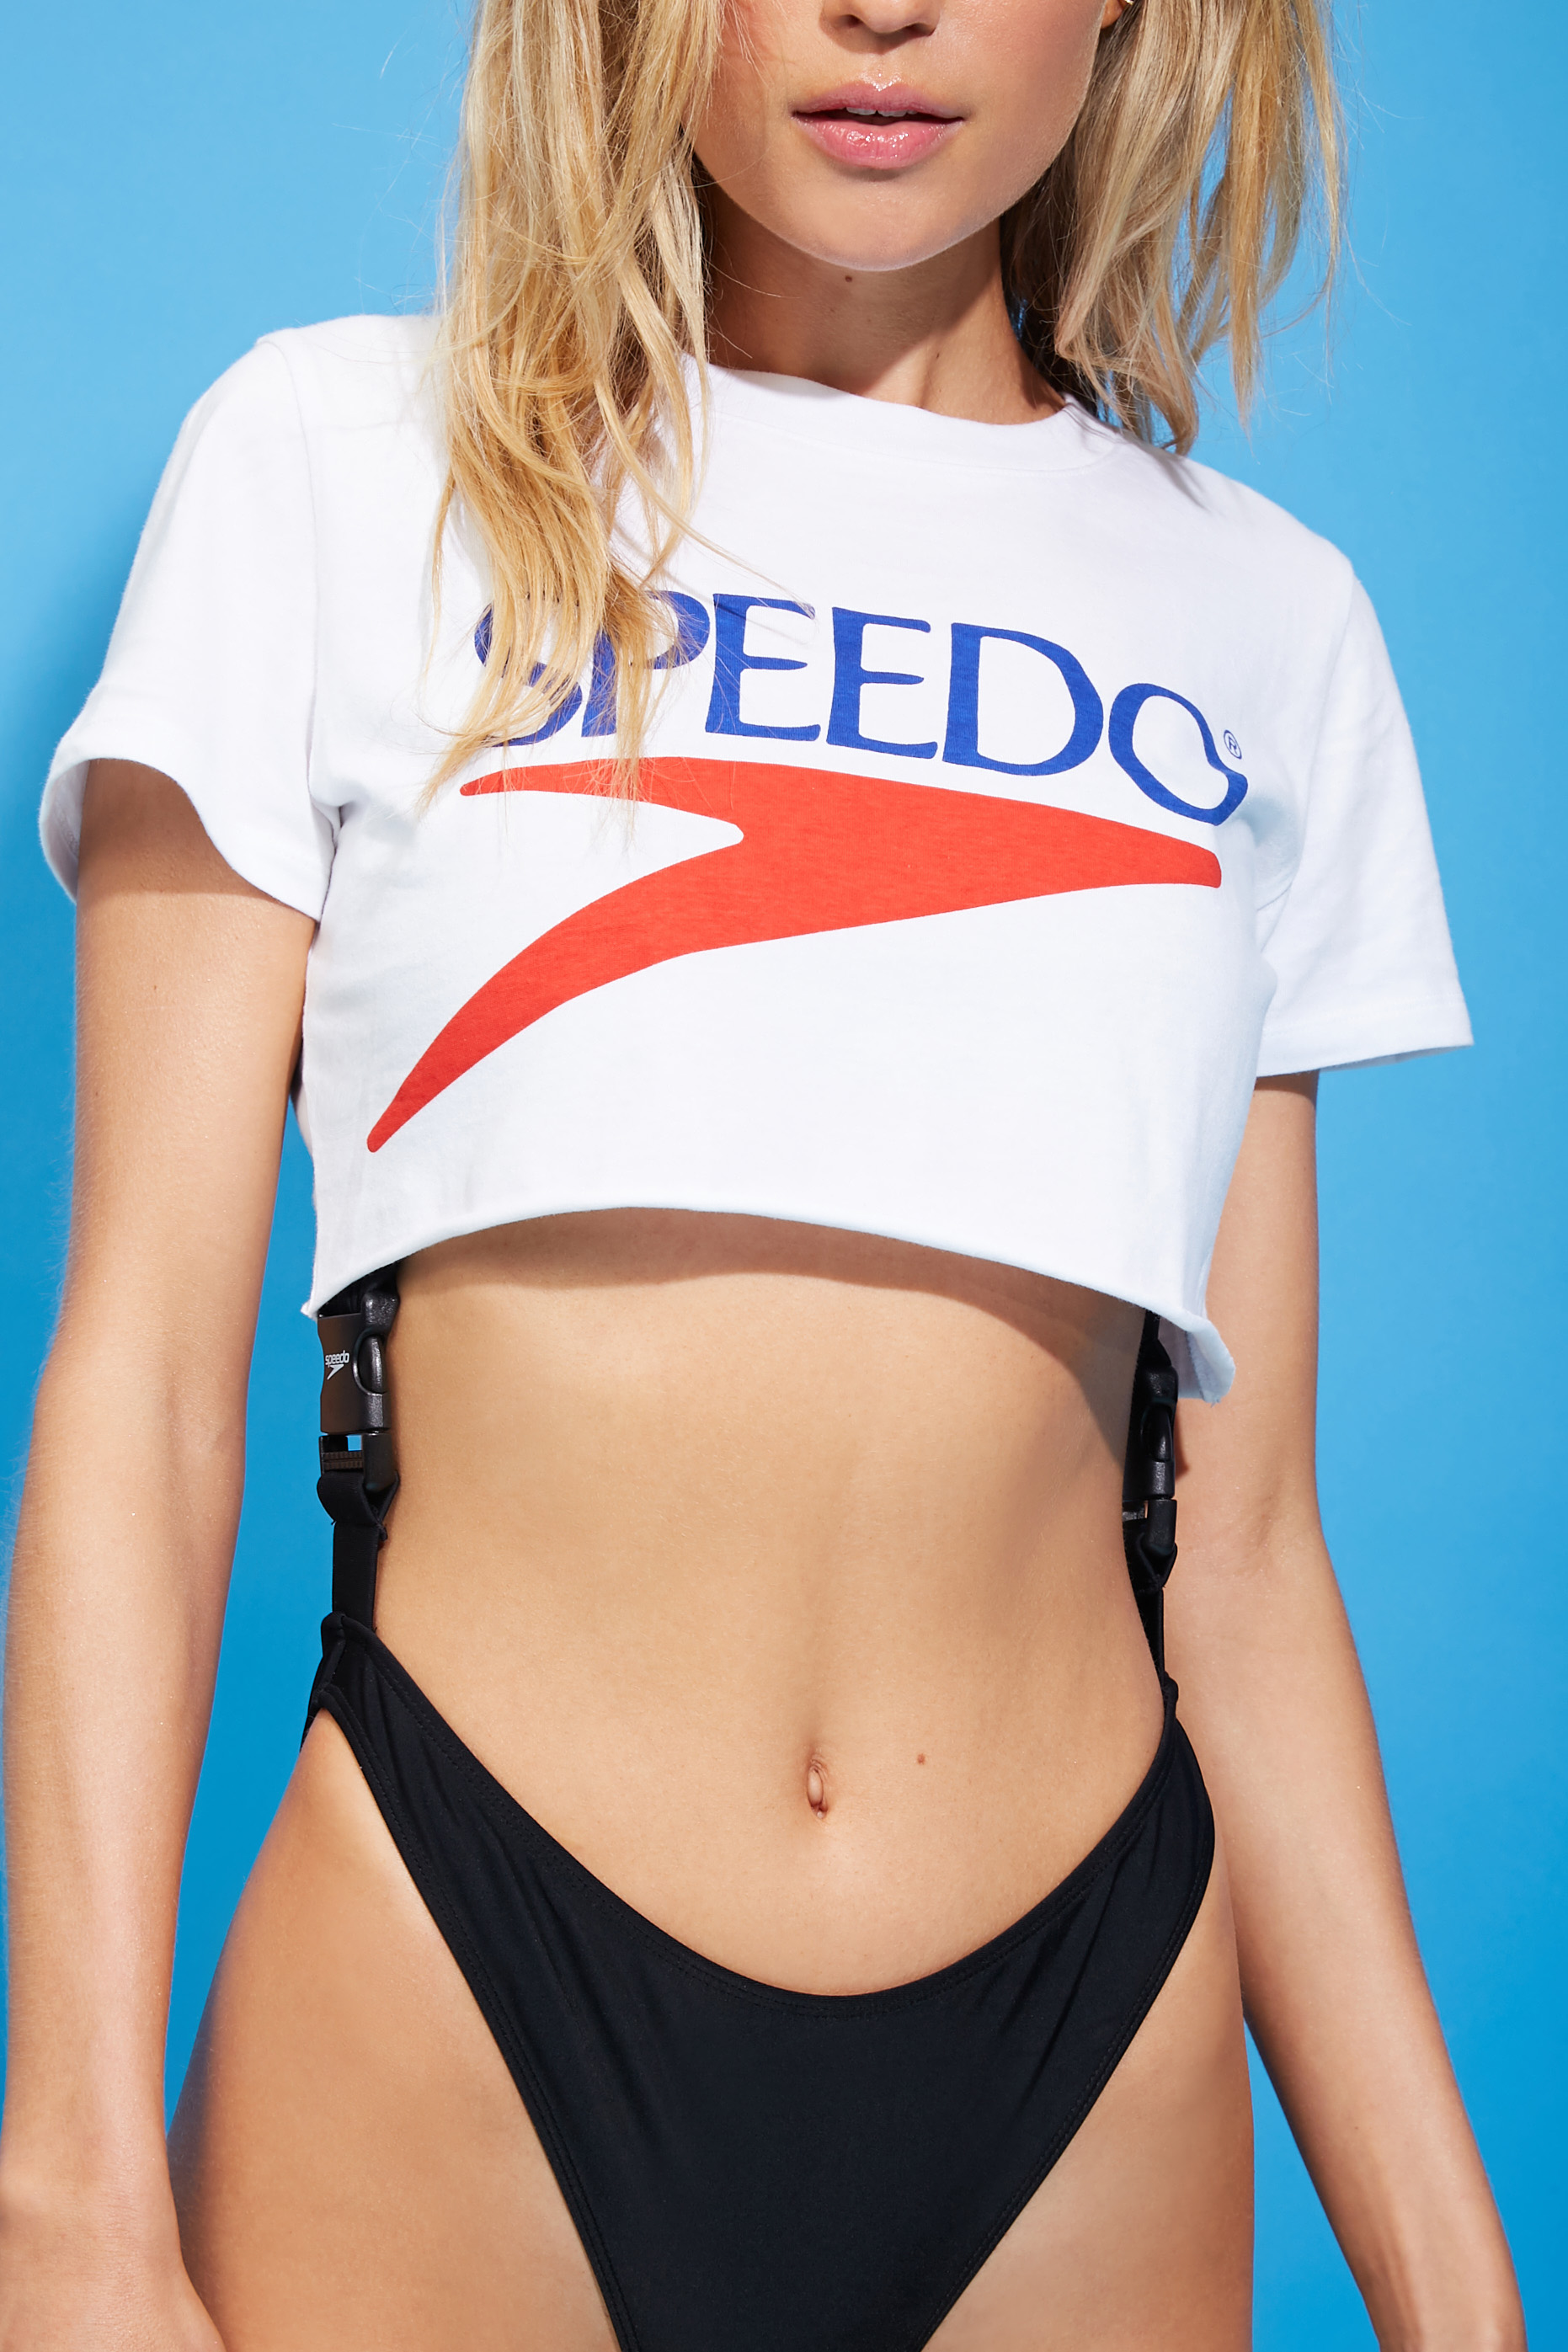 Speedo Graphic Cropped Tee - $17.90